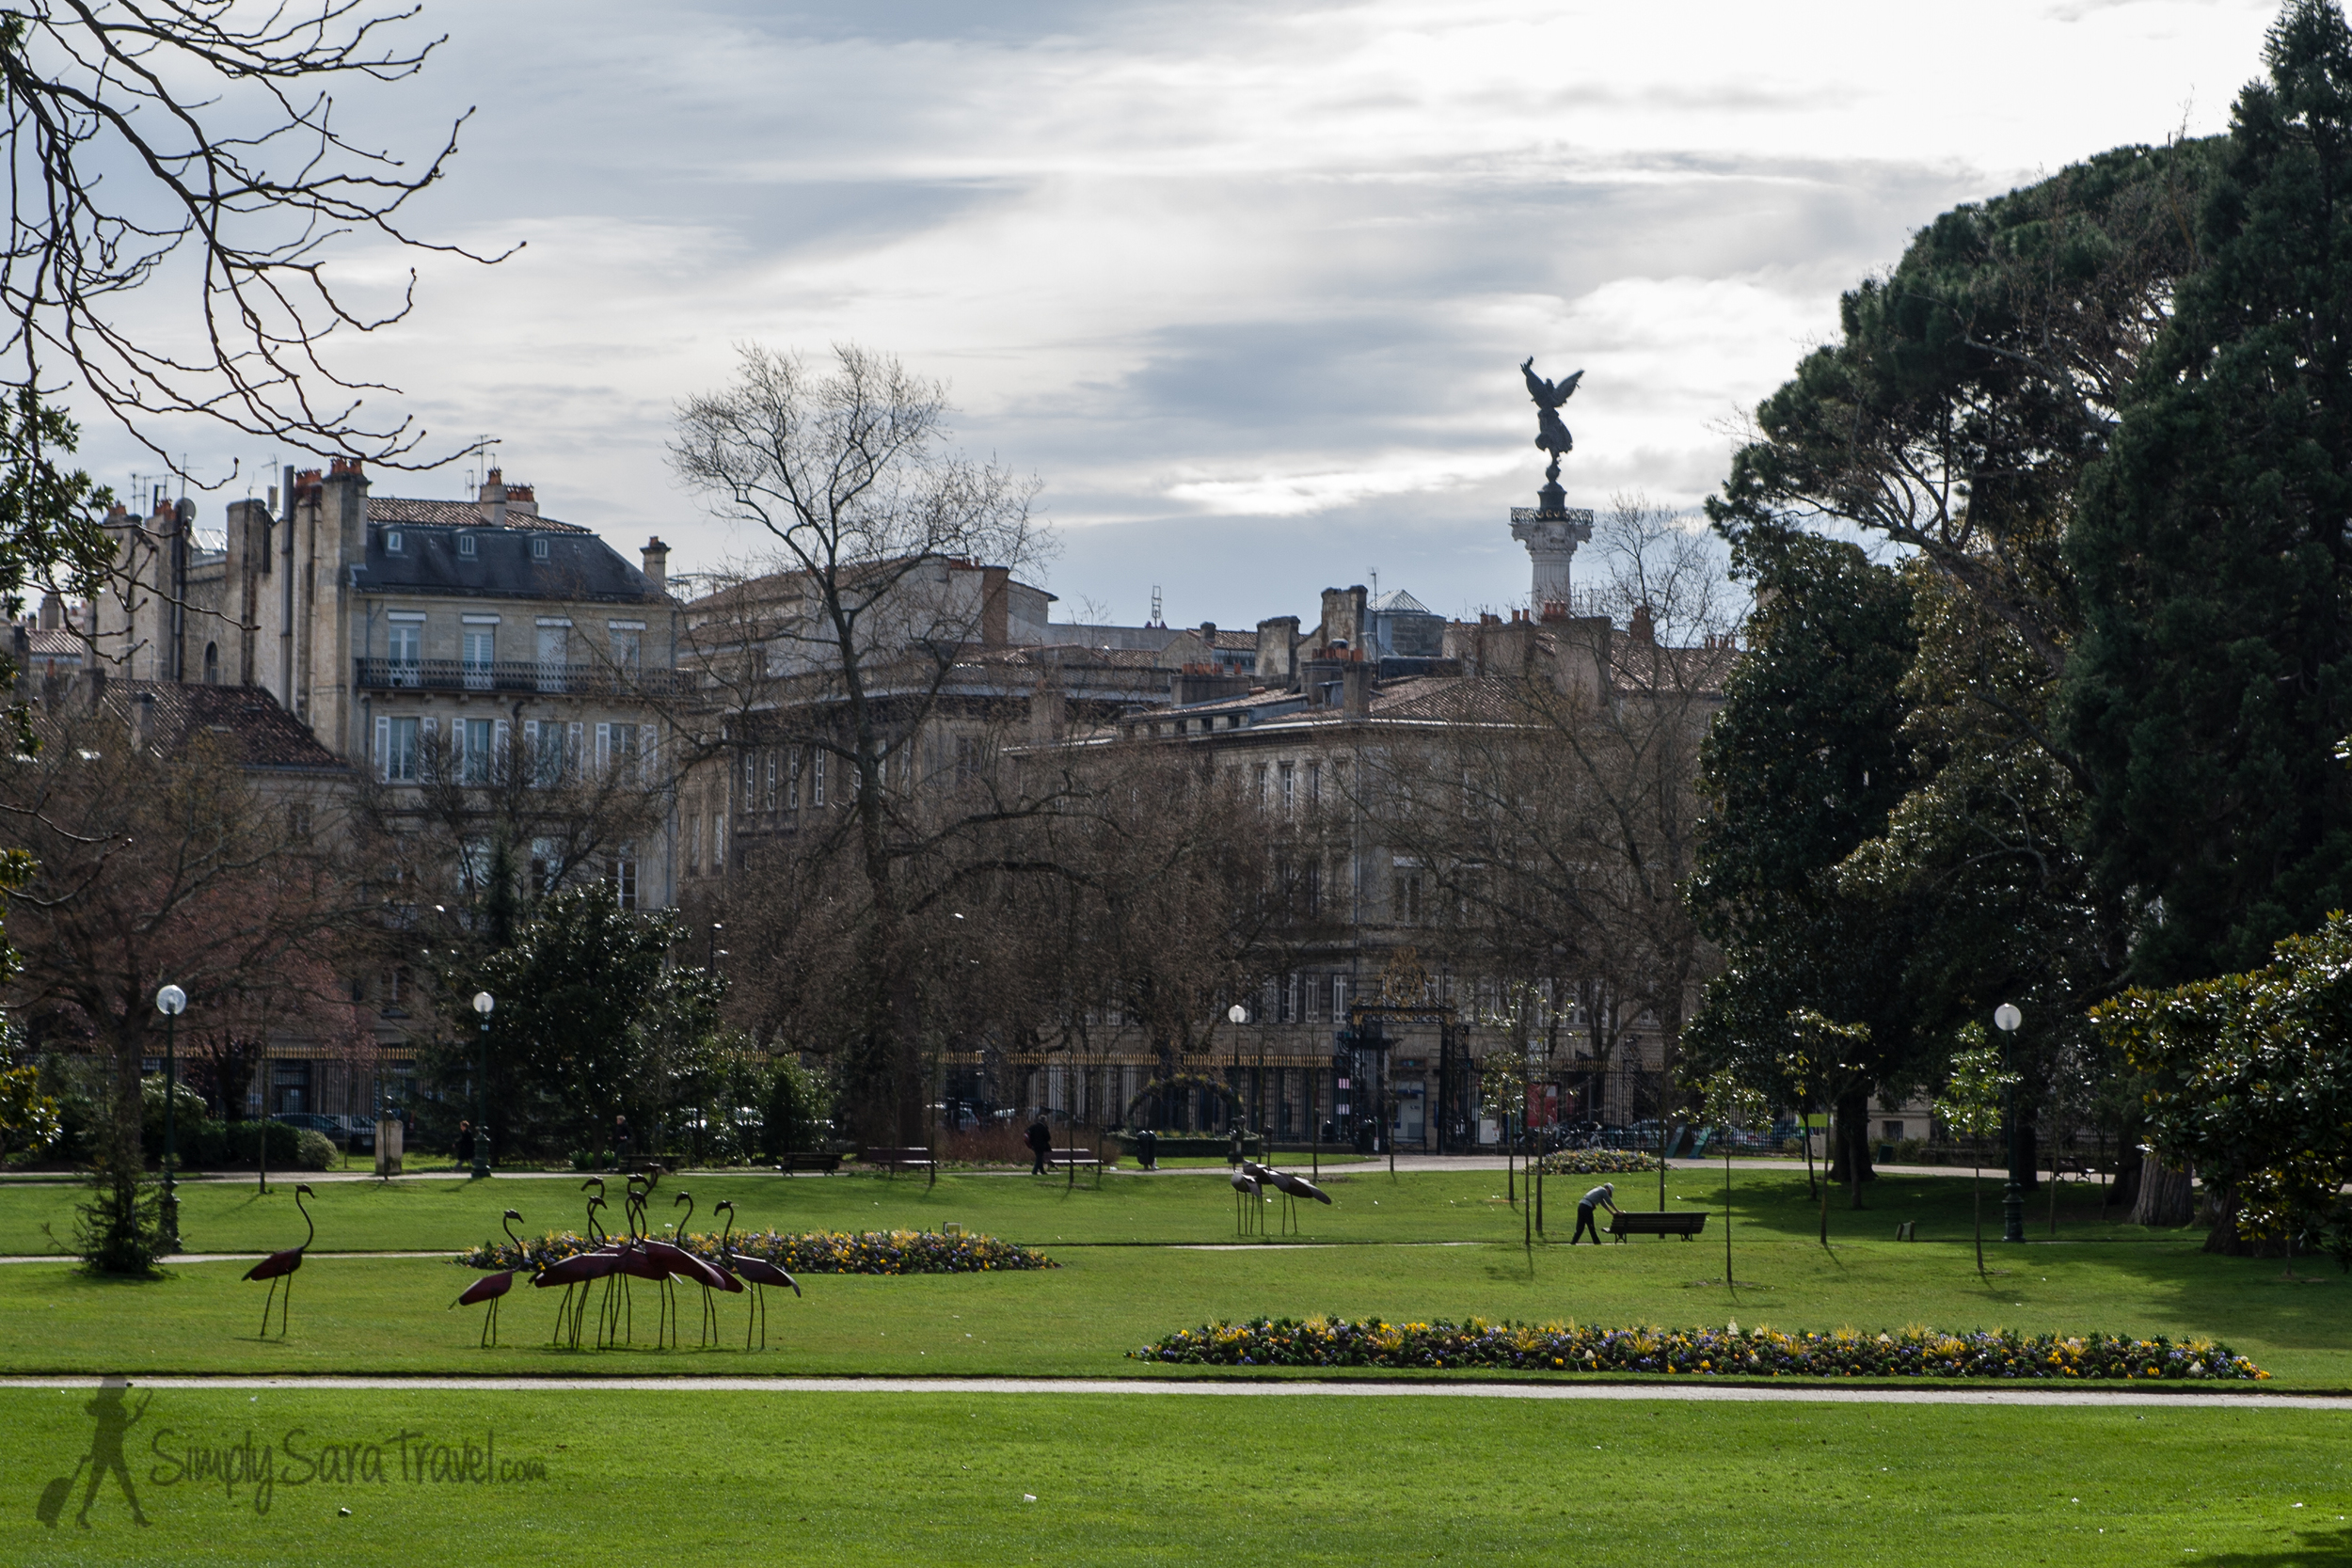 The public garden with a view of theMonument aux Girondins rising up behind the buildings